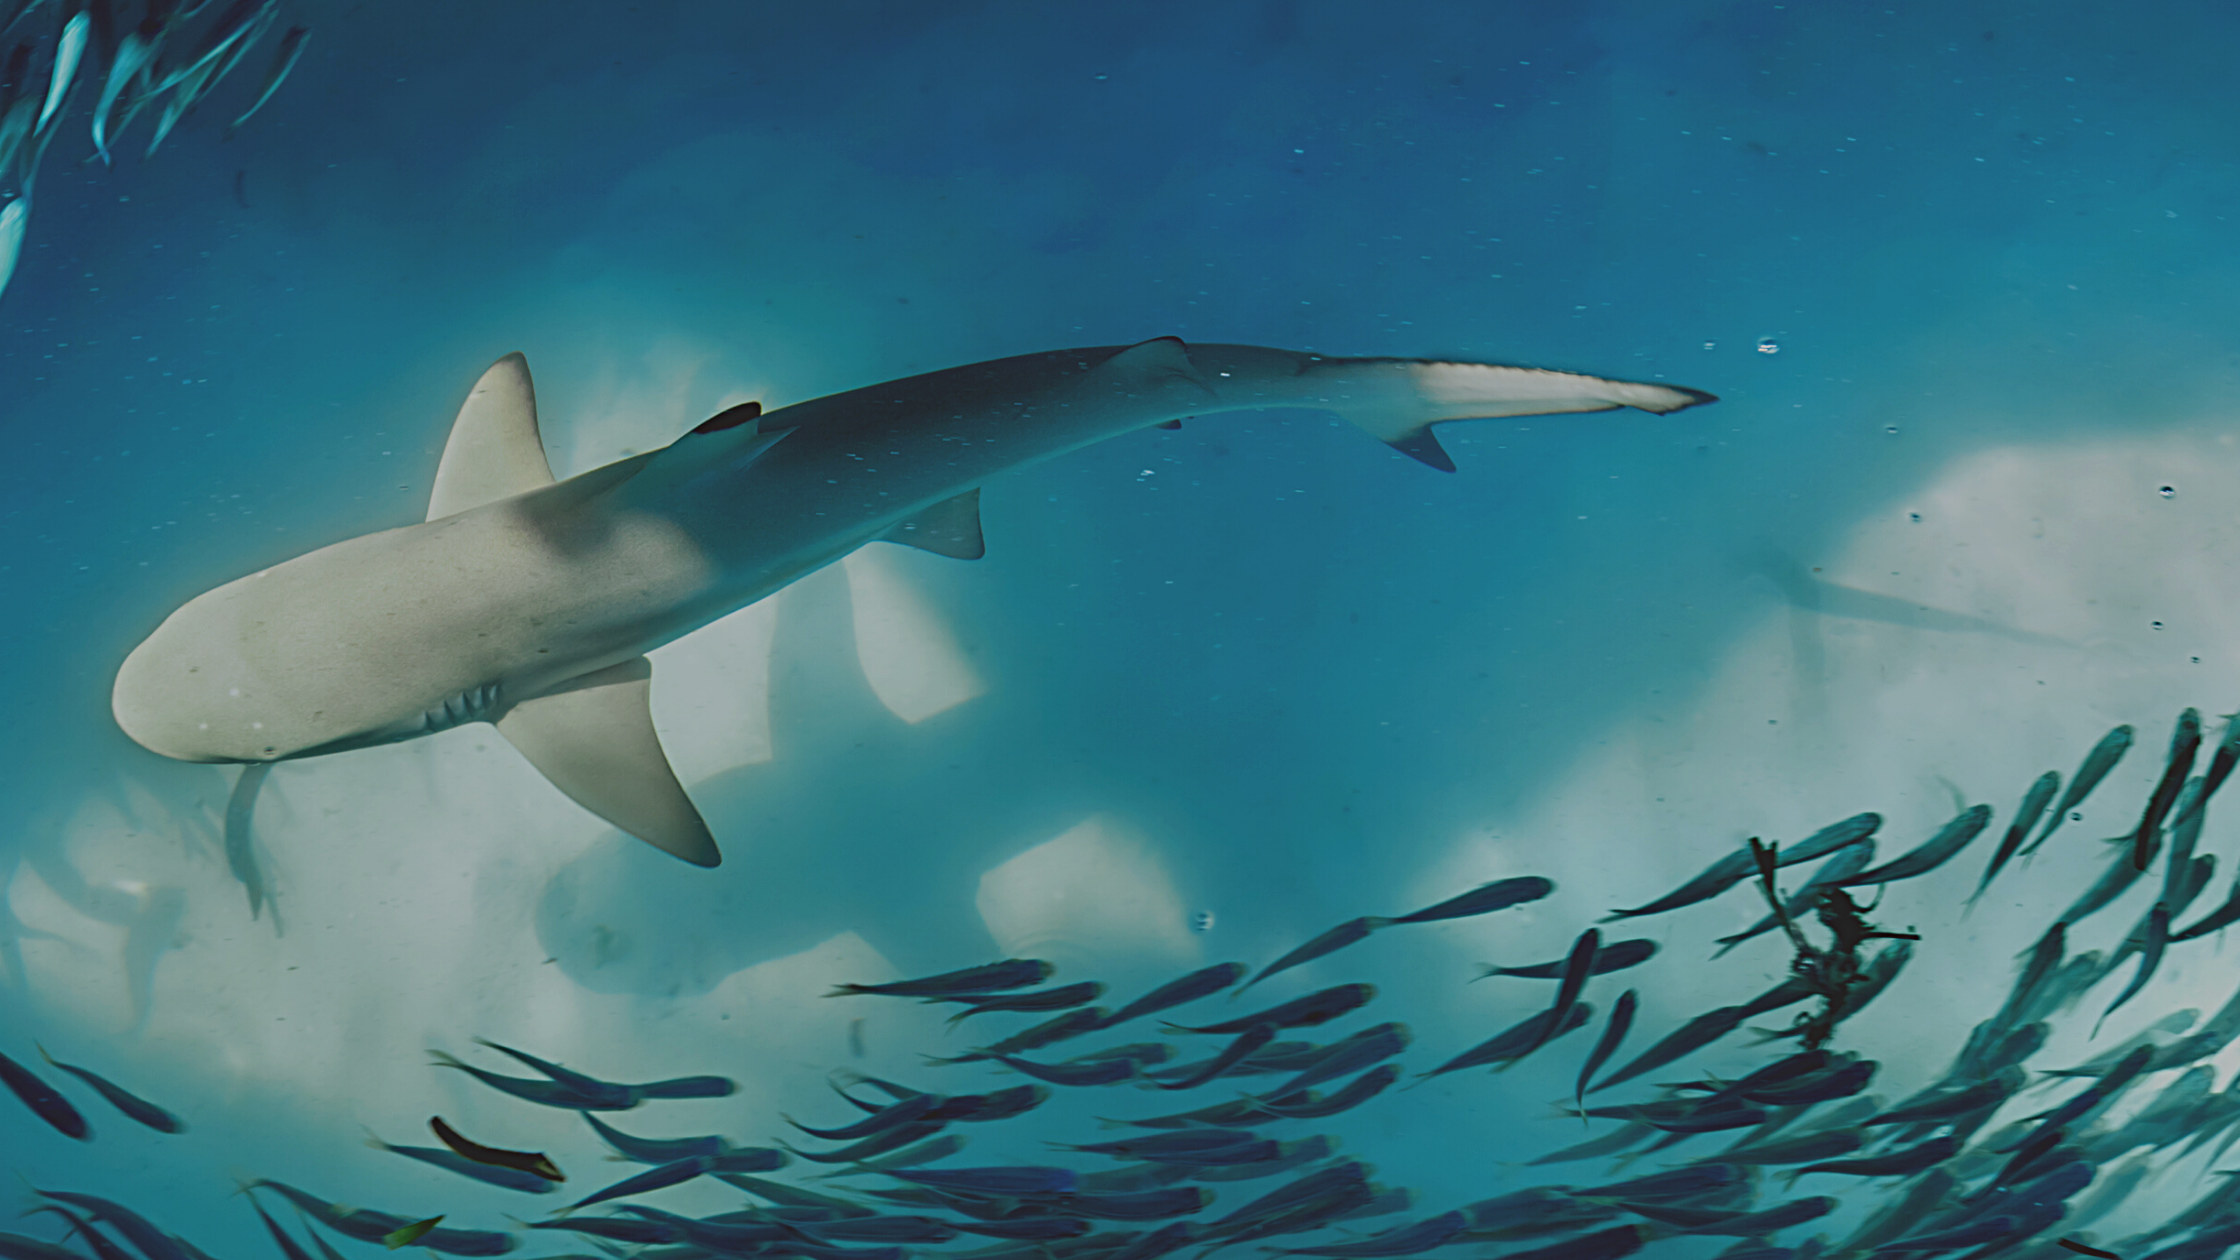 Want to Avoid Cyber Sharks? Swim With The School. 4/14 Small Business Webinar.